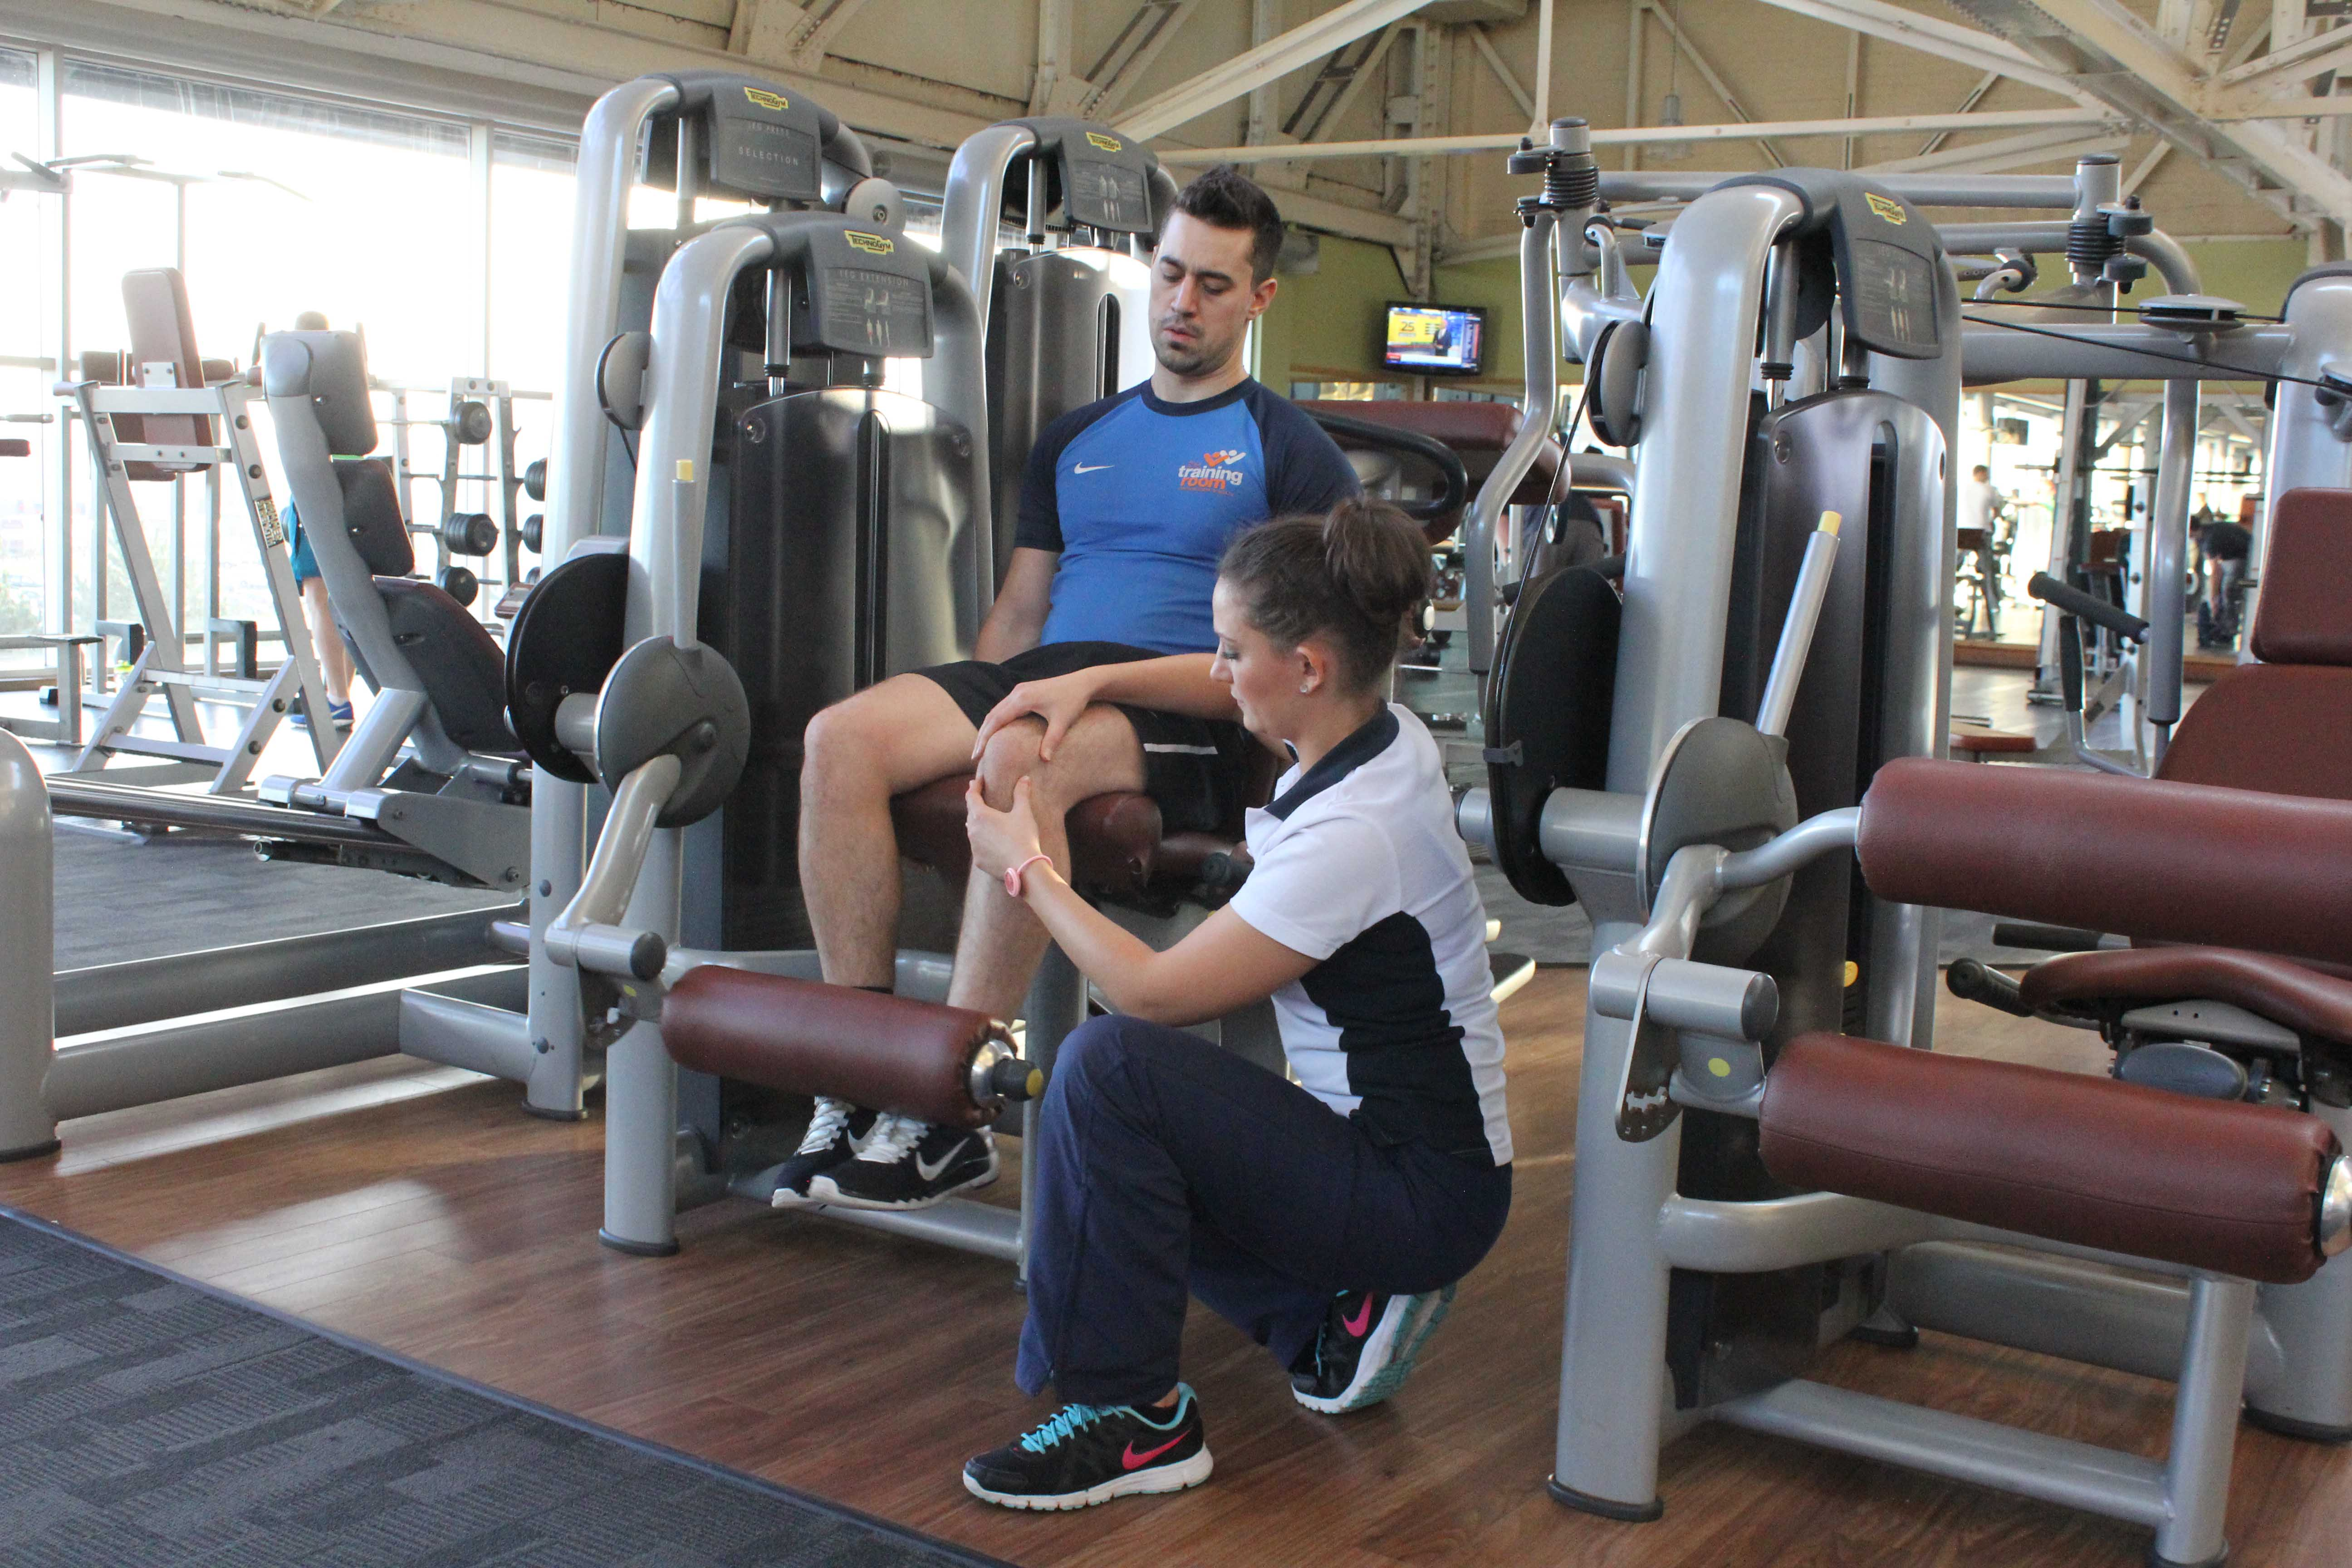 Progressive knee strengthening exercises performed under supervision of experienced MSK physiotherapist